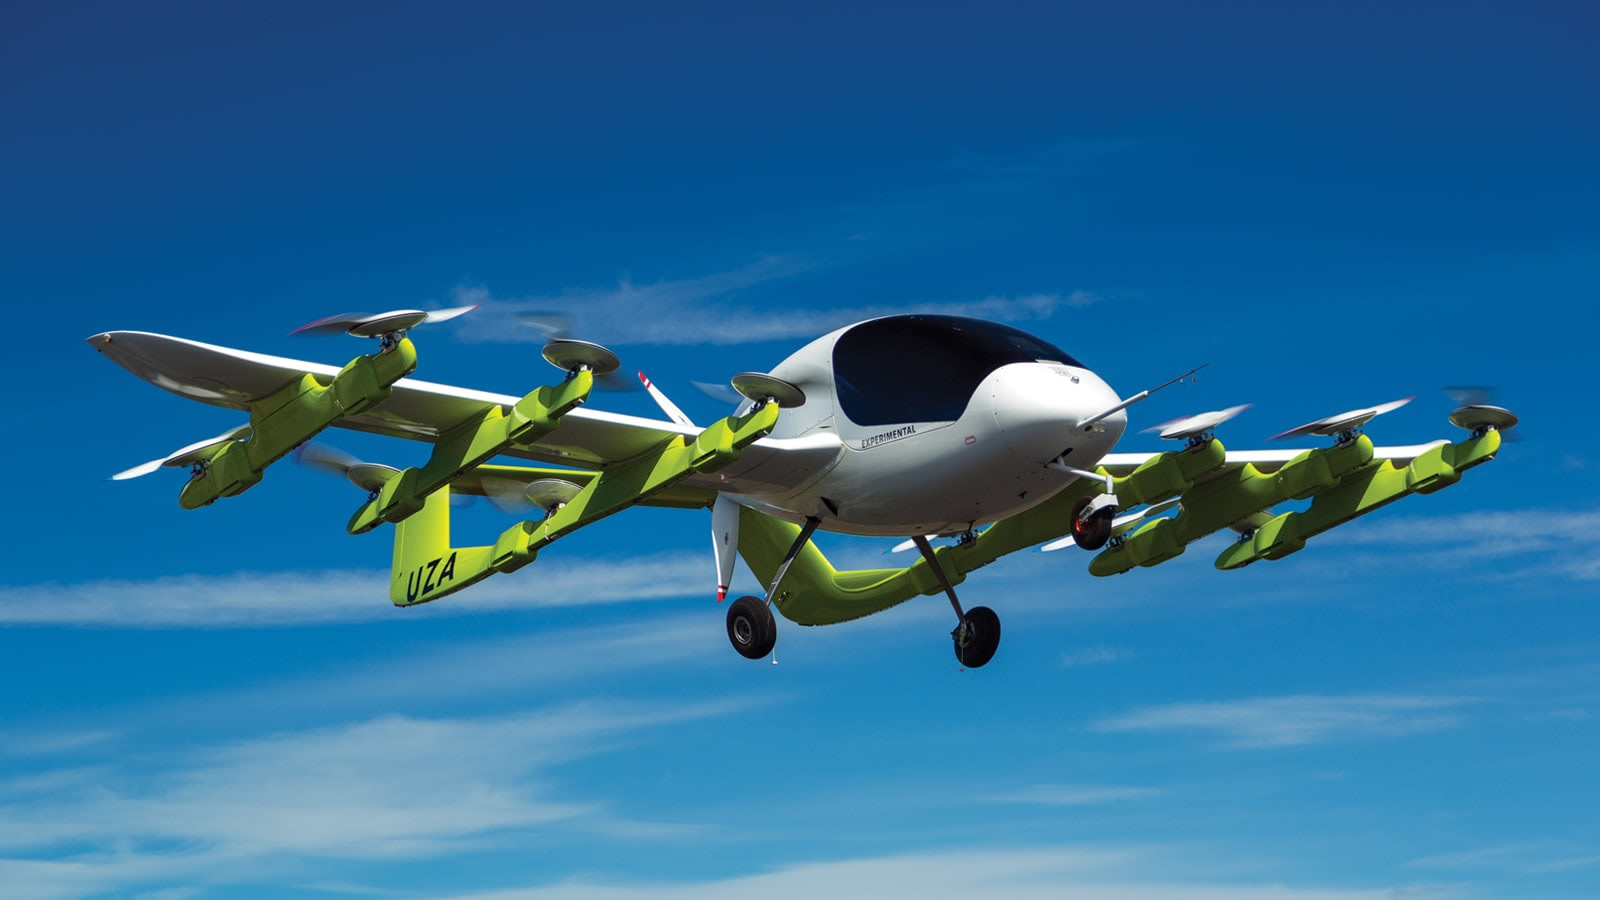 Boeing teams with flying taxi startup Kitty Hawk on 'urban air mobility'